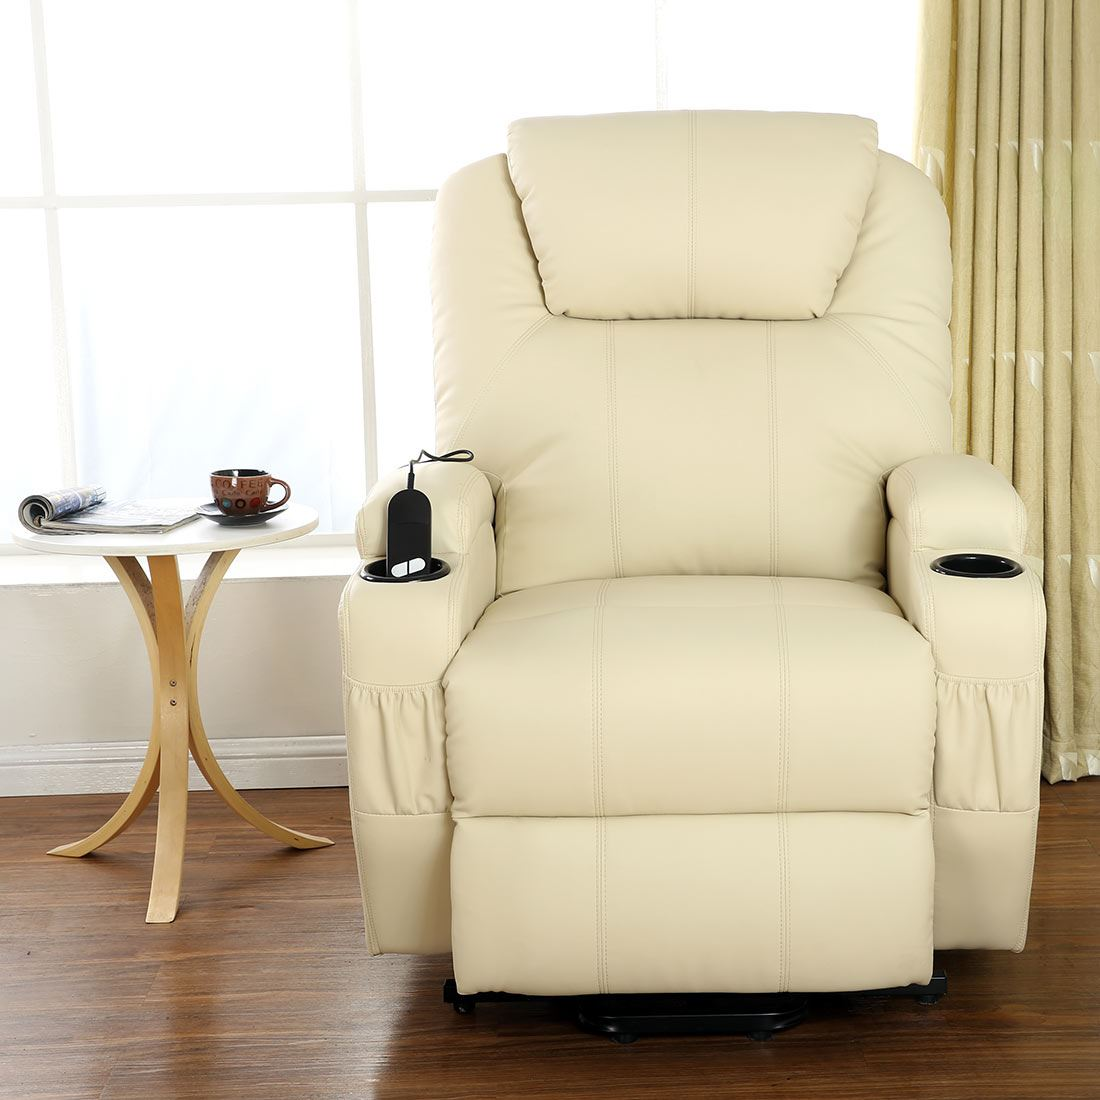 CINEMO-ELECRTIC-RISE-RECLINER-LEATHER-MASSEAGE-HEAT-ARMCHAIR-SOFA-LOUNGE-CHAIR